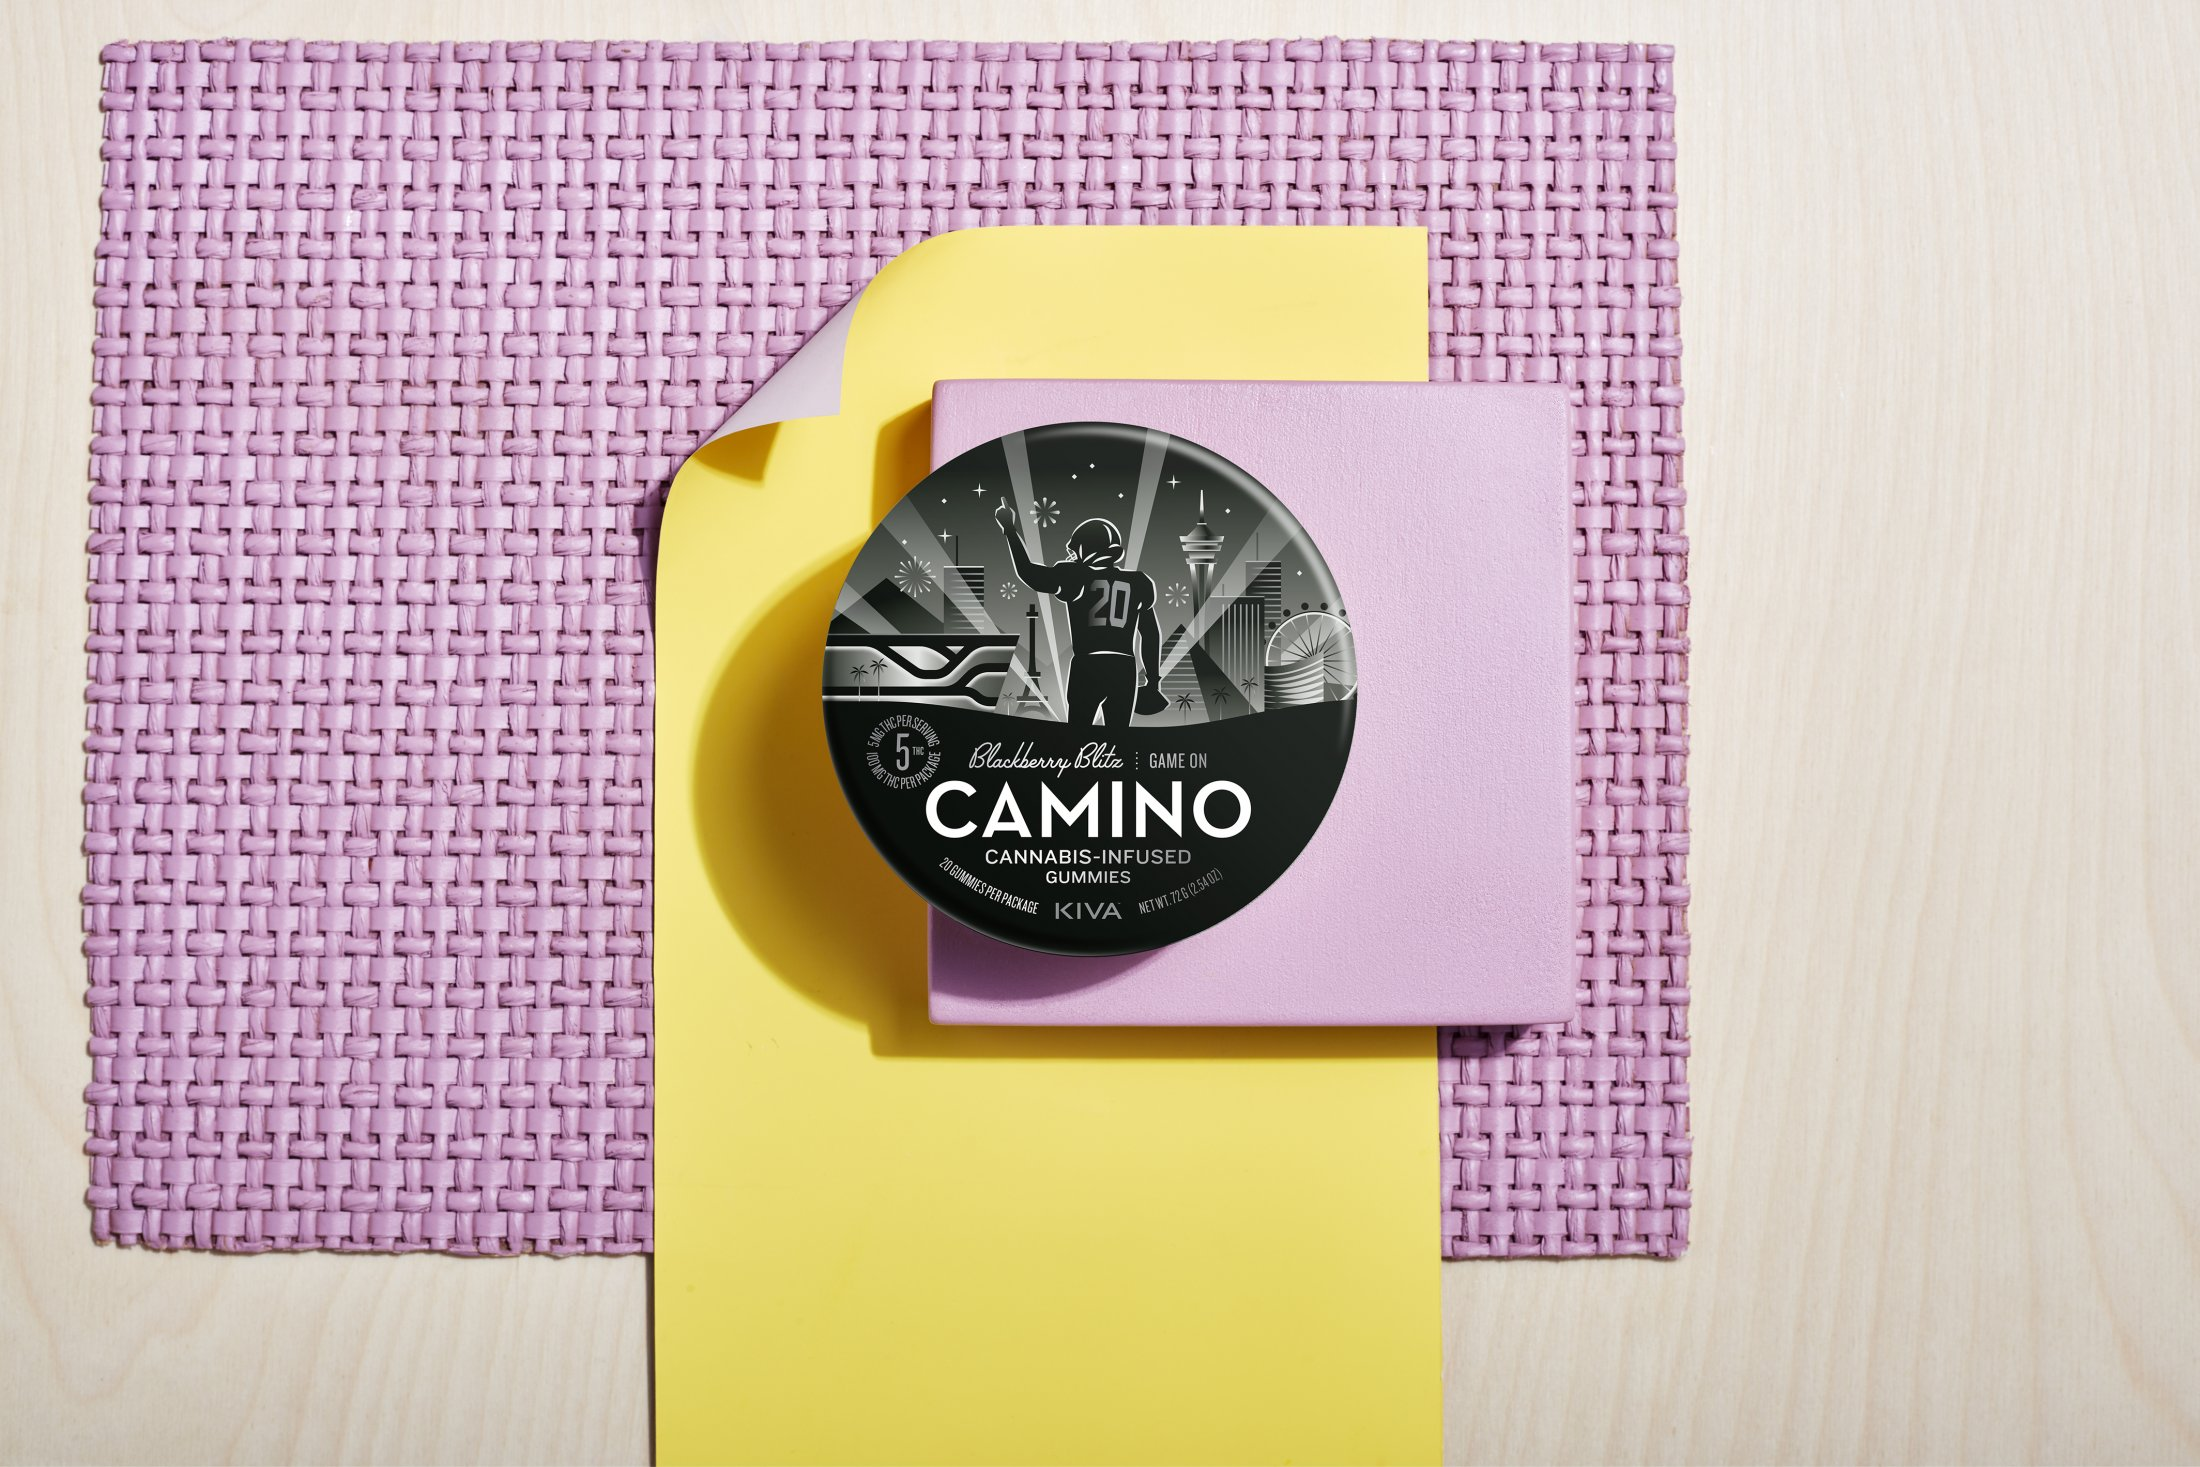 Camino: A Sustainable State of Mind